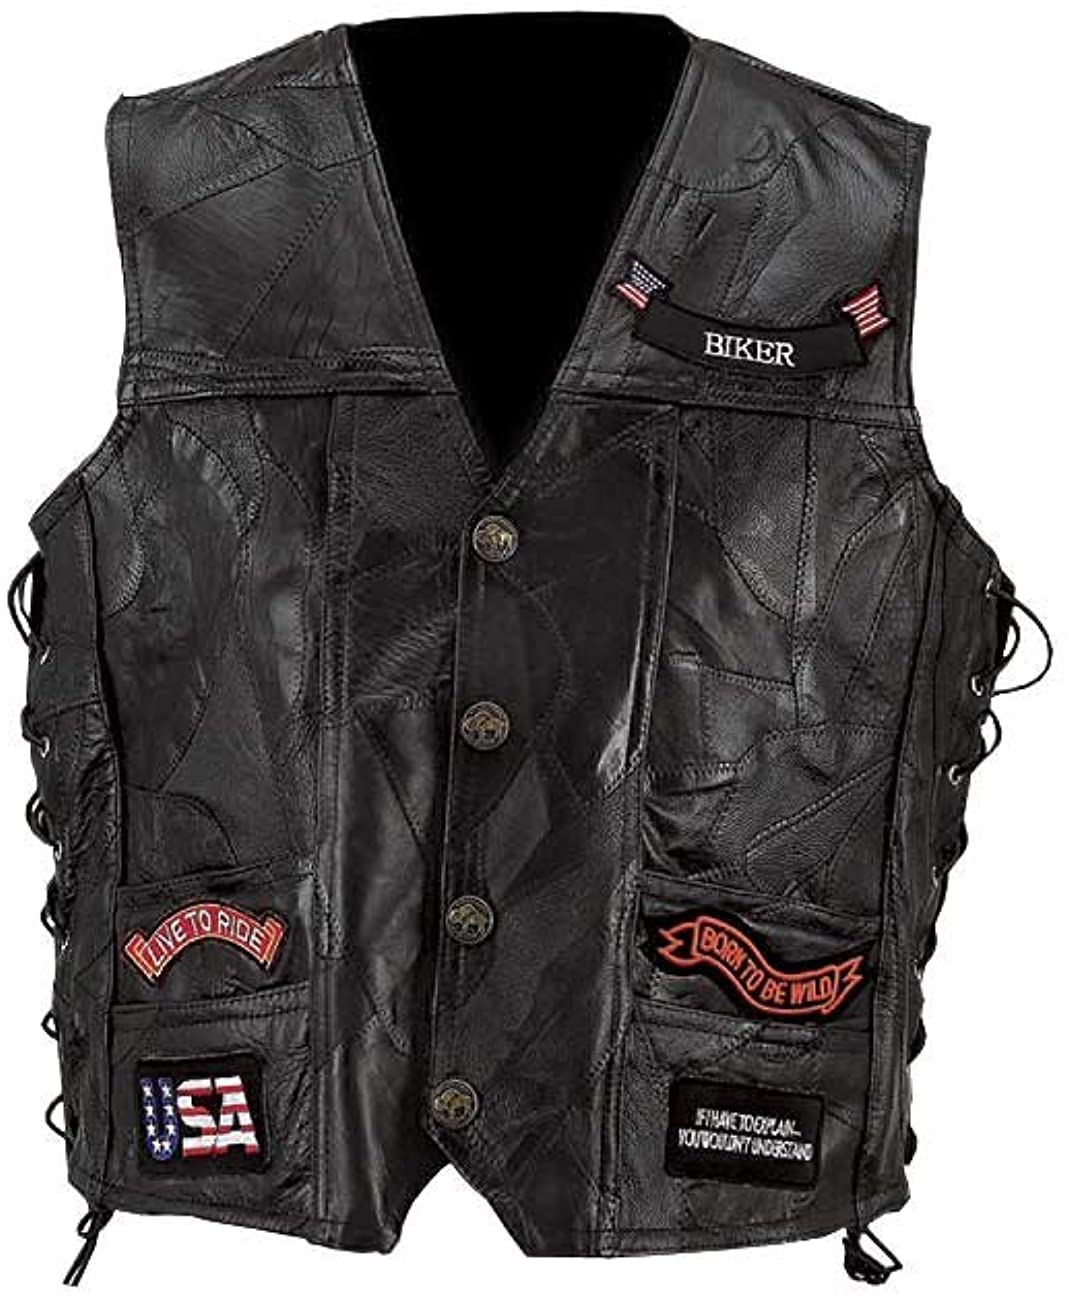 Diamond Plate Genuine Leather Motorcycle Vest w/14 Patches